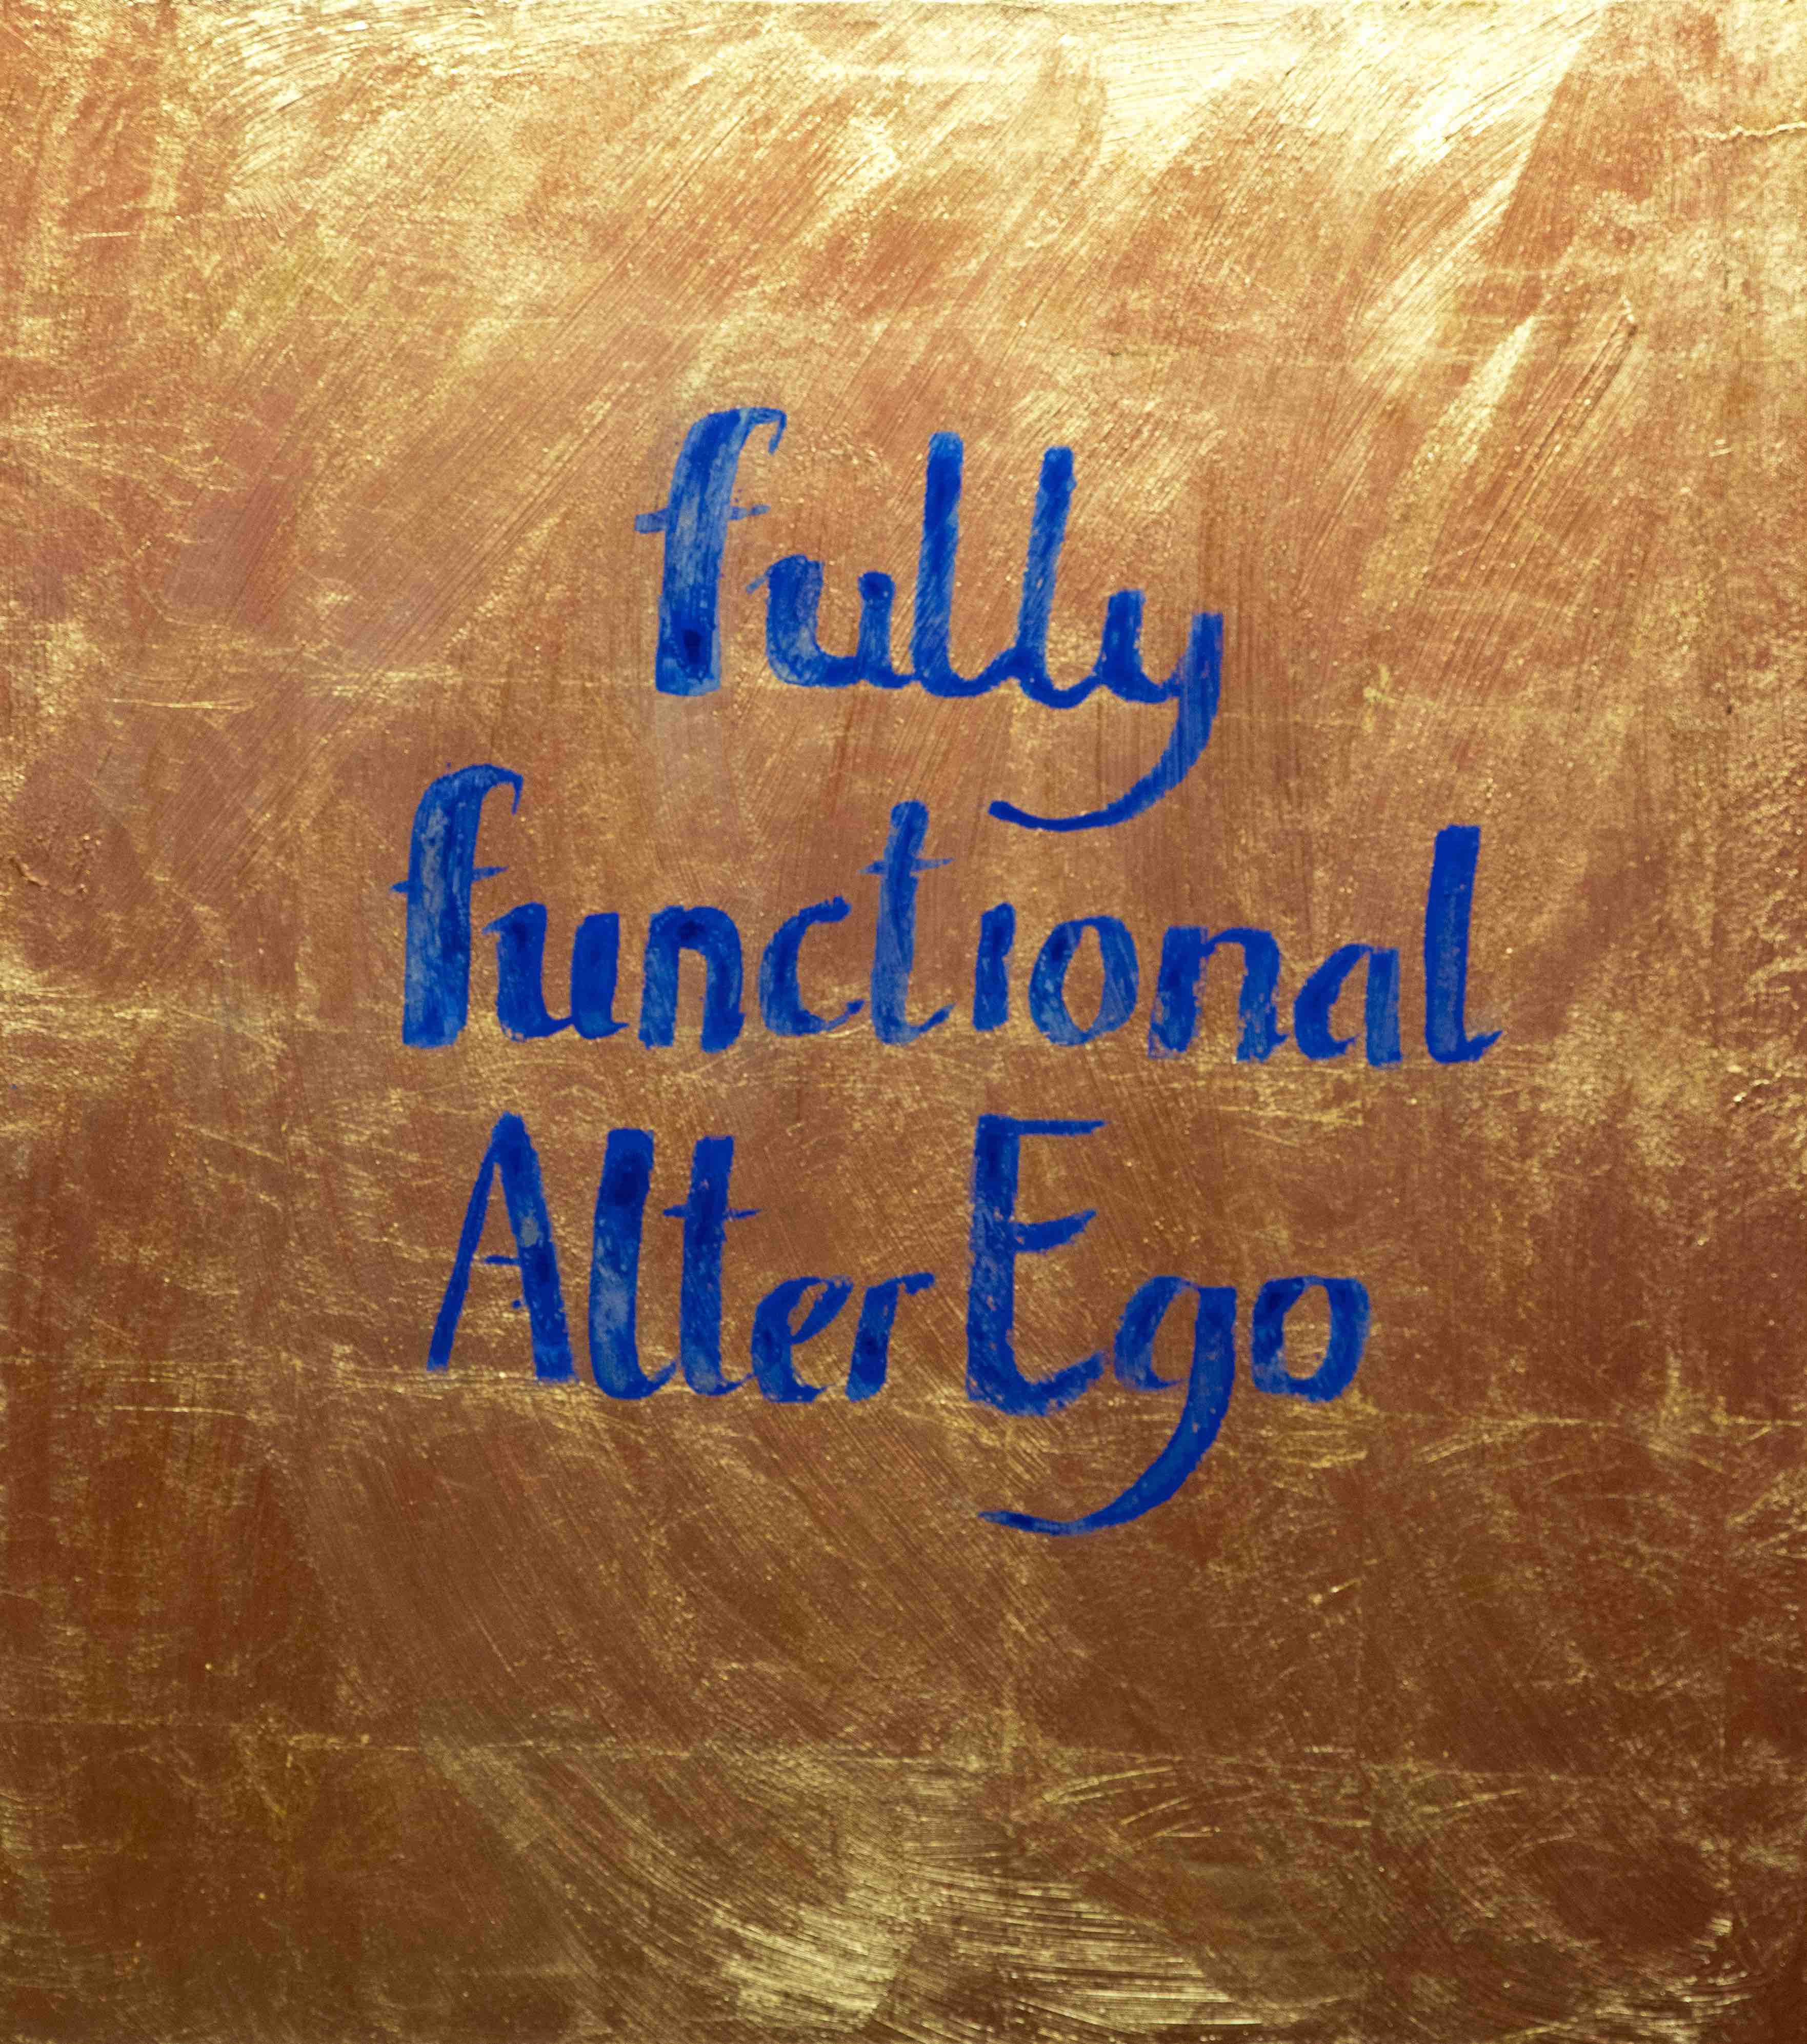 Fully Functional Alterego